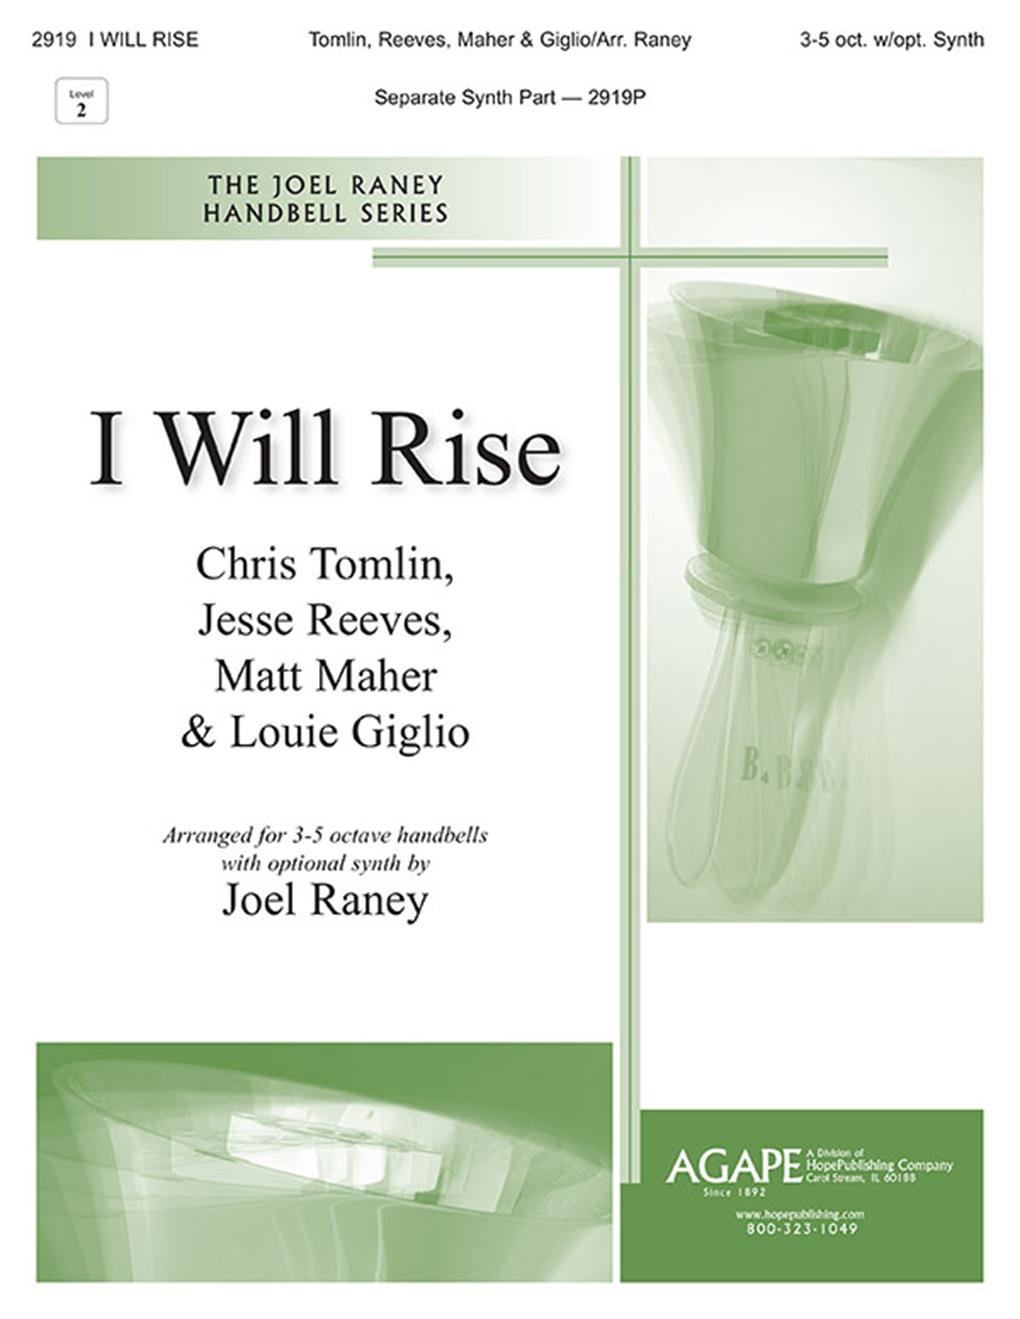 I Will Rise - 3-5 Oct. Cover Image